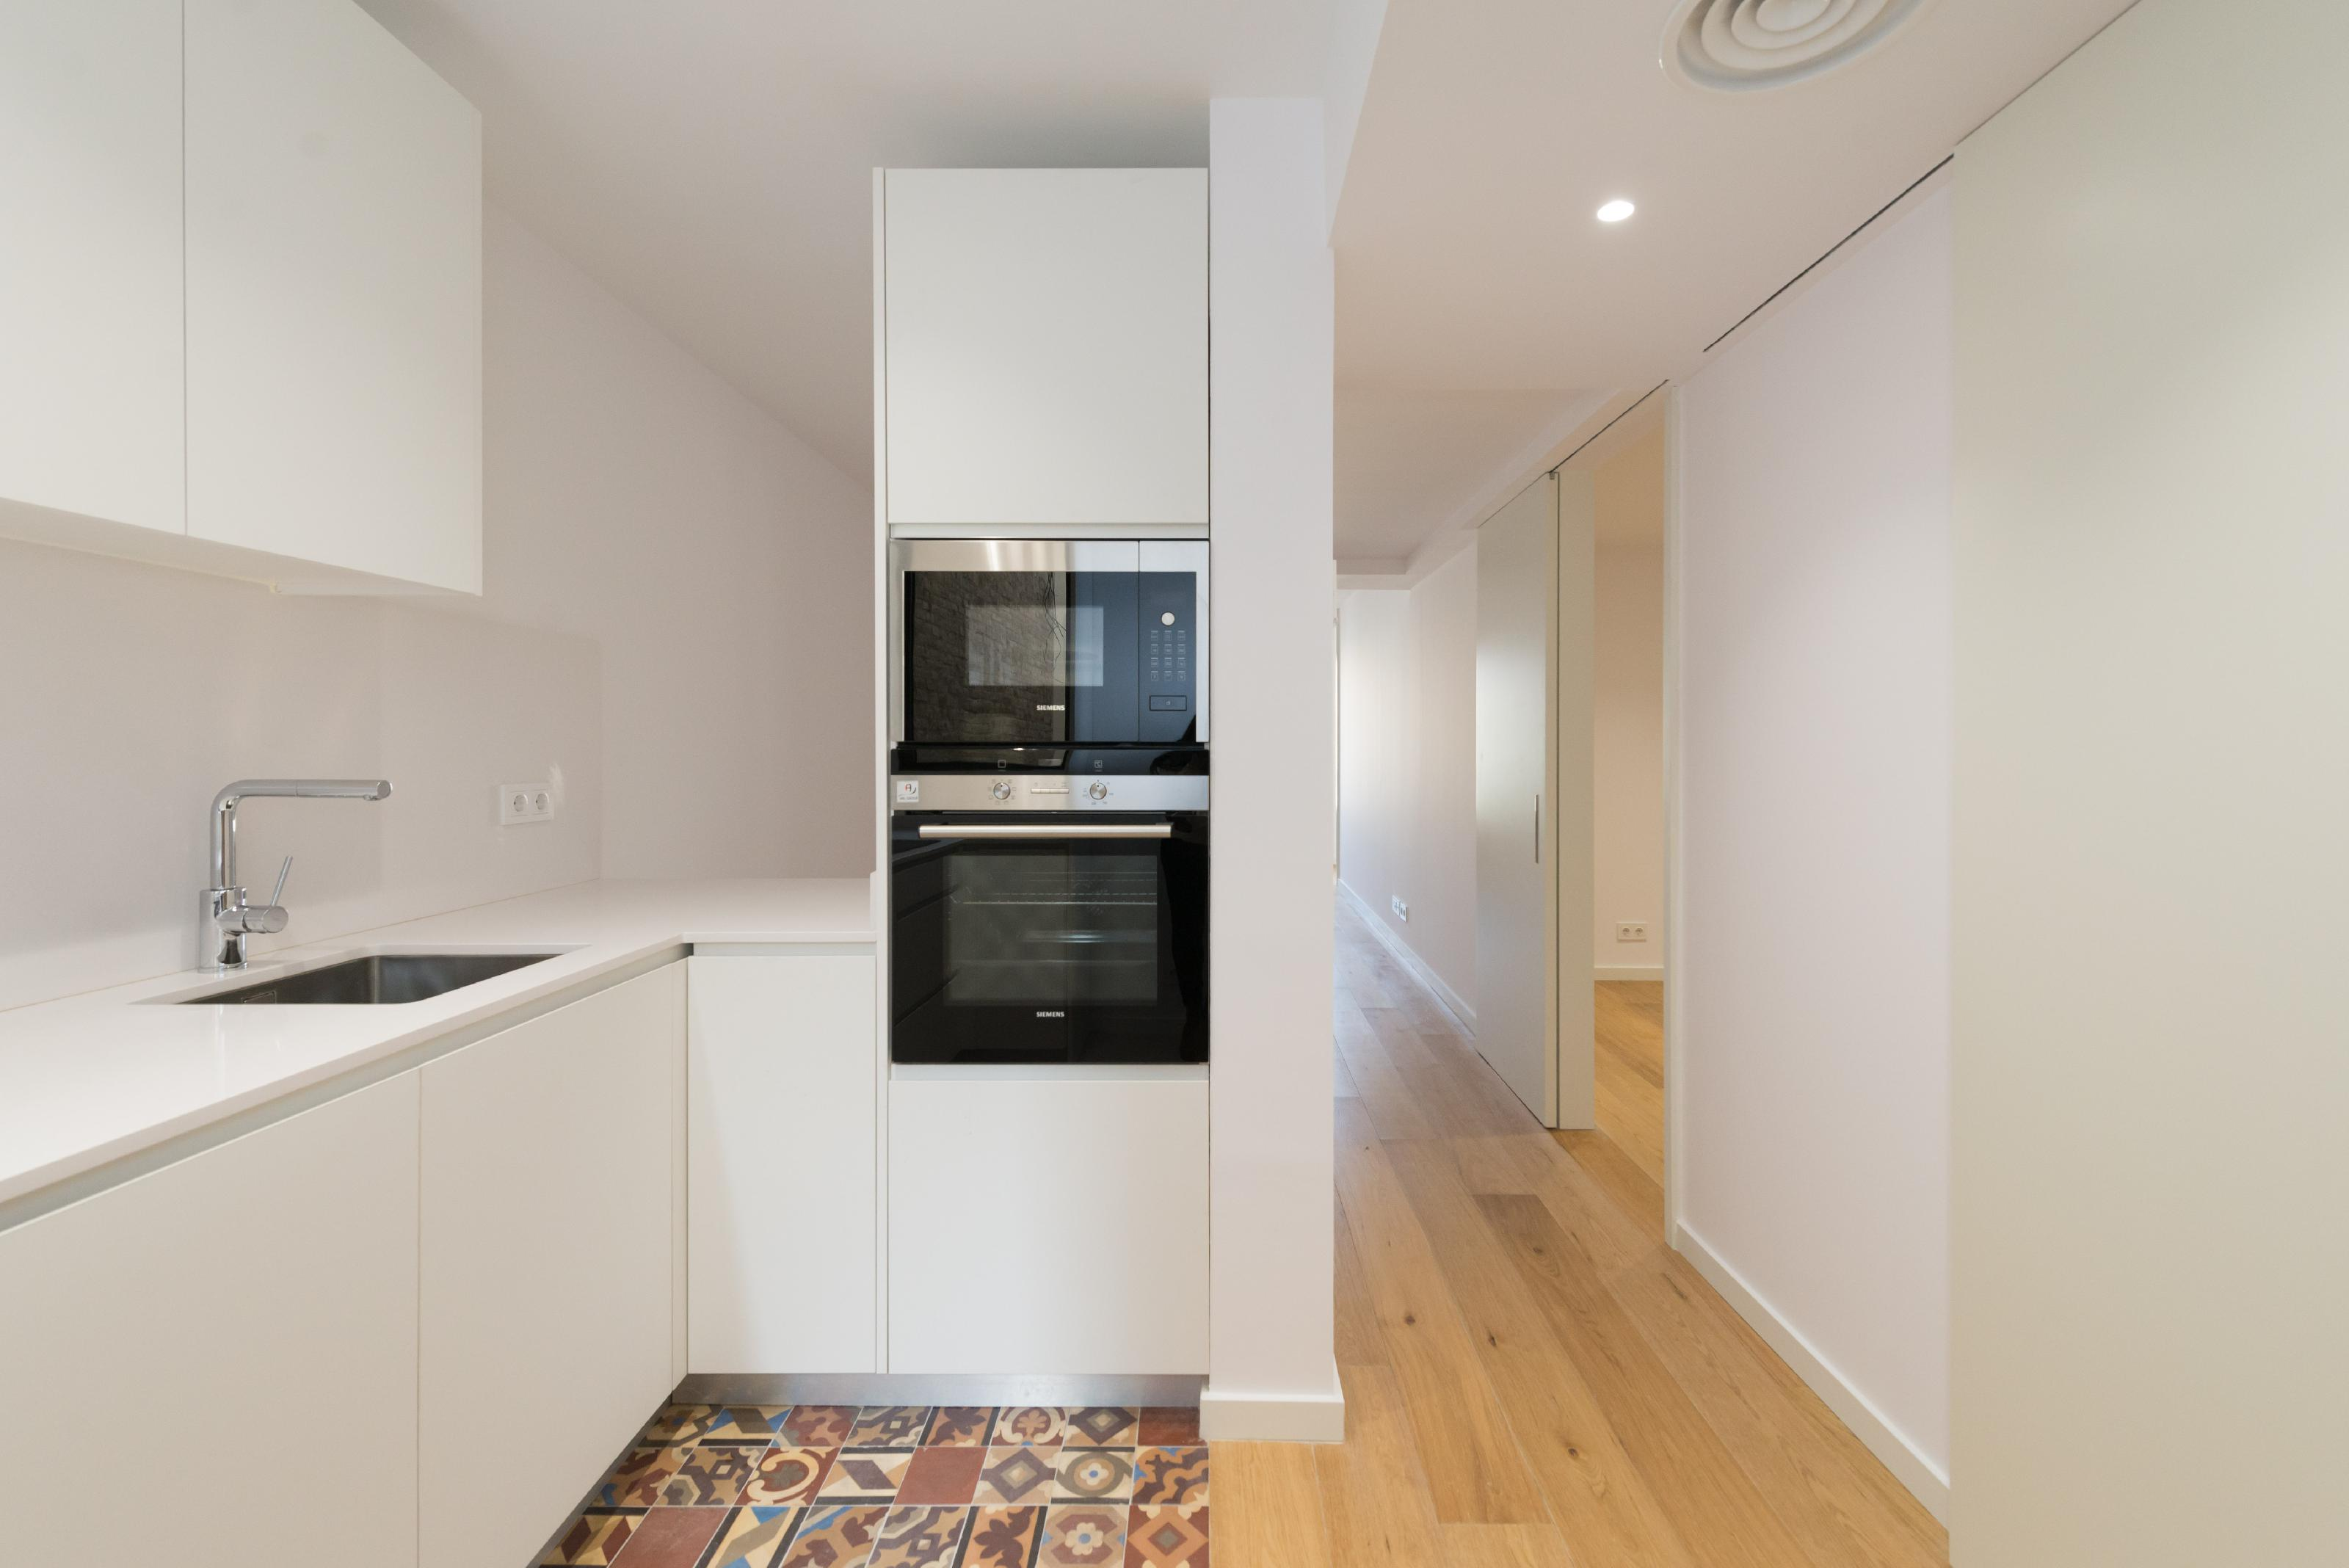 236358 Flat for sale in Eixample, Old Left Eixample 17